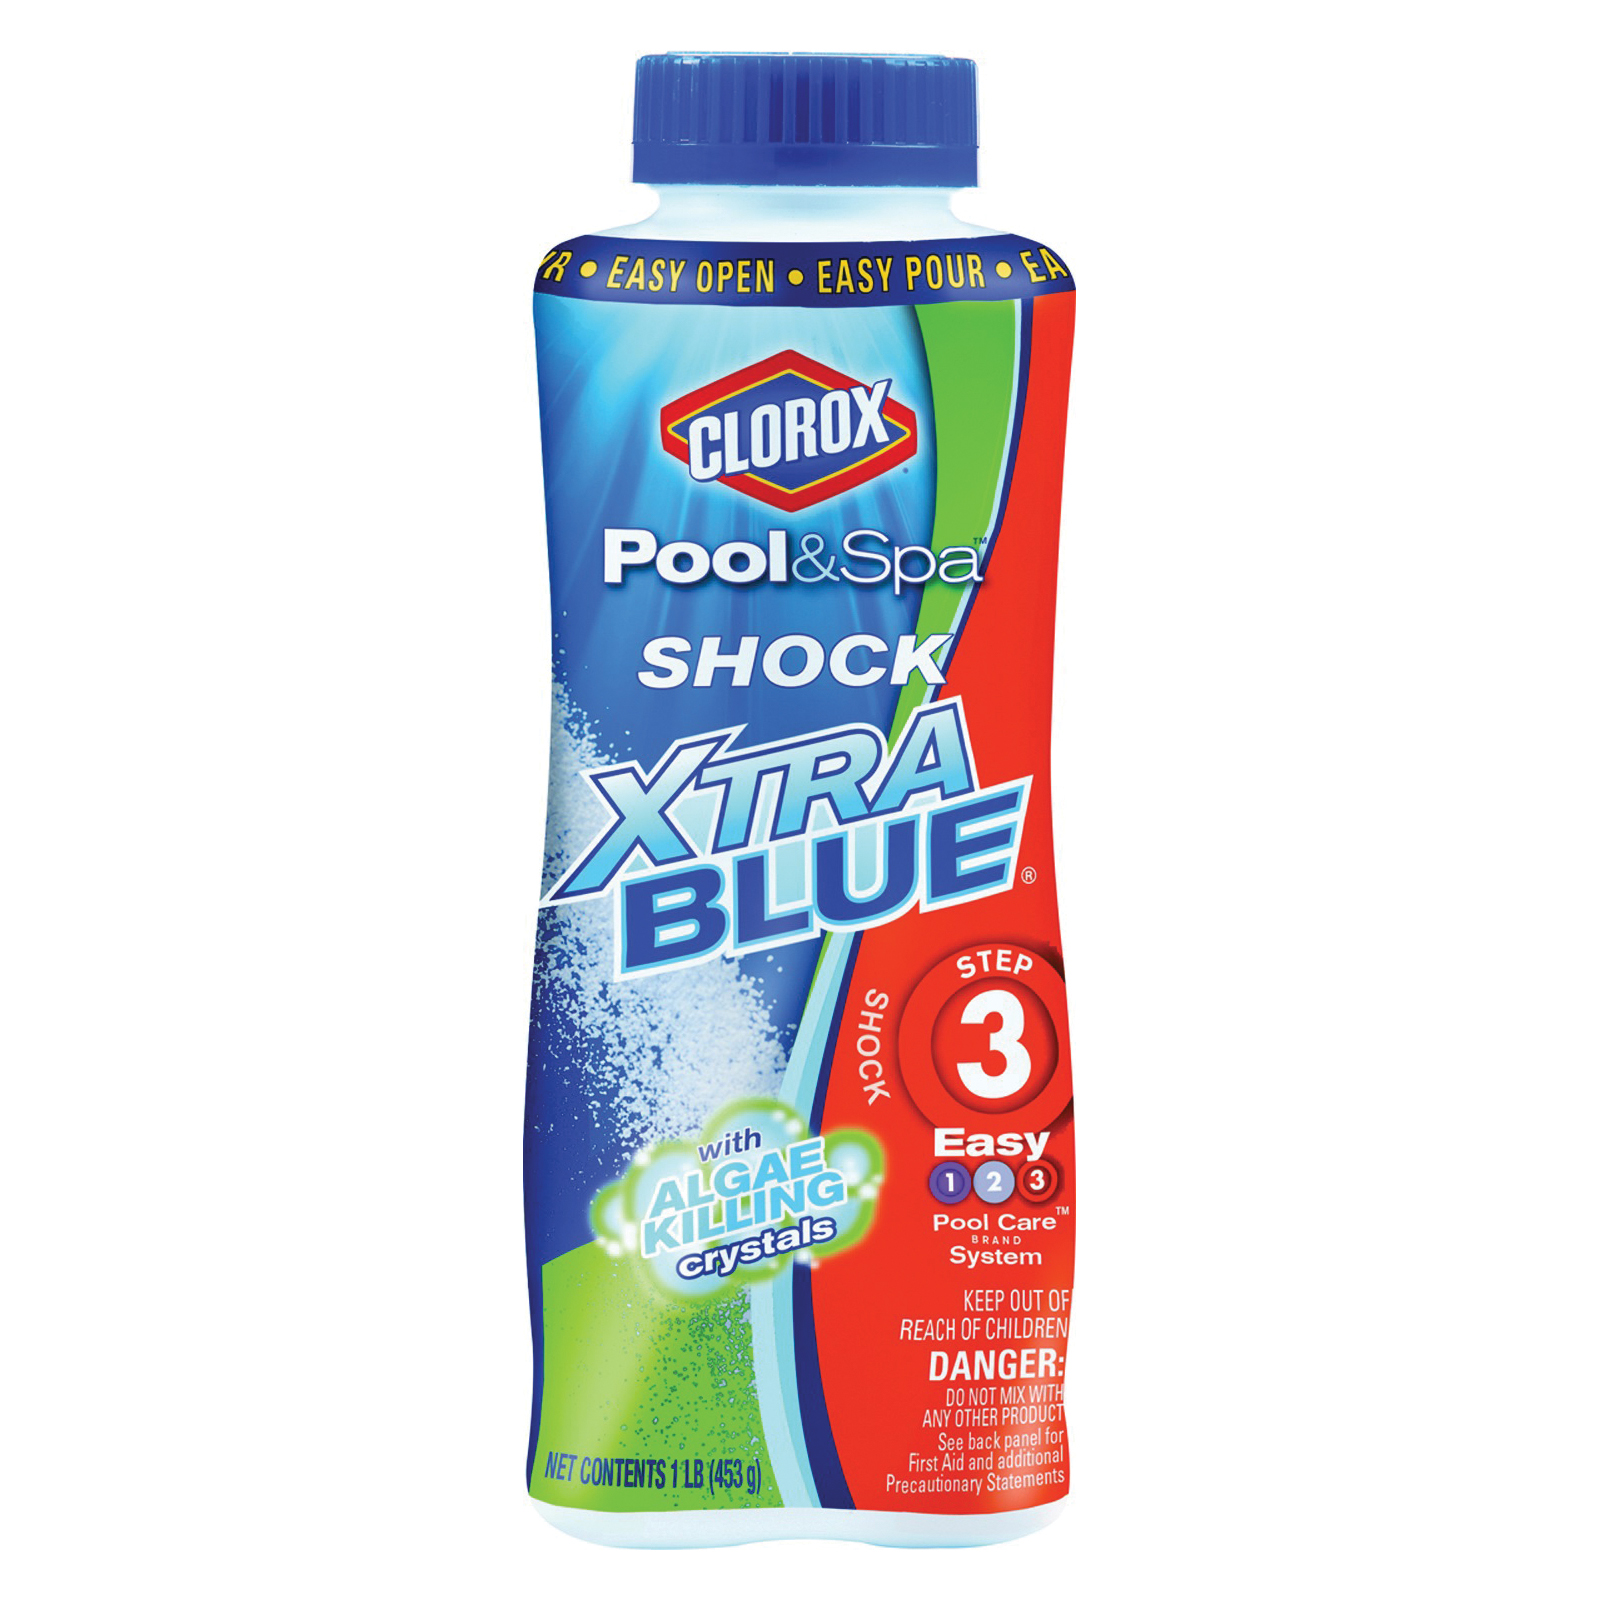 Picture of Clorox Pool & Spa Shock Xtra Blue 33030CLX Pool Chemical, 1 lb, Bottle, Granular, Chlorine